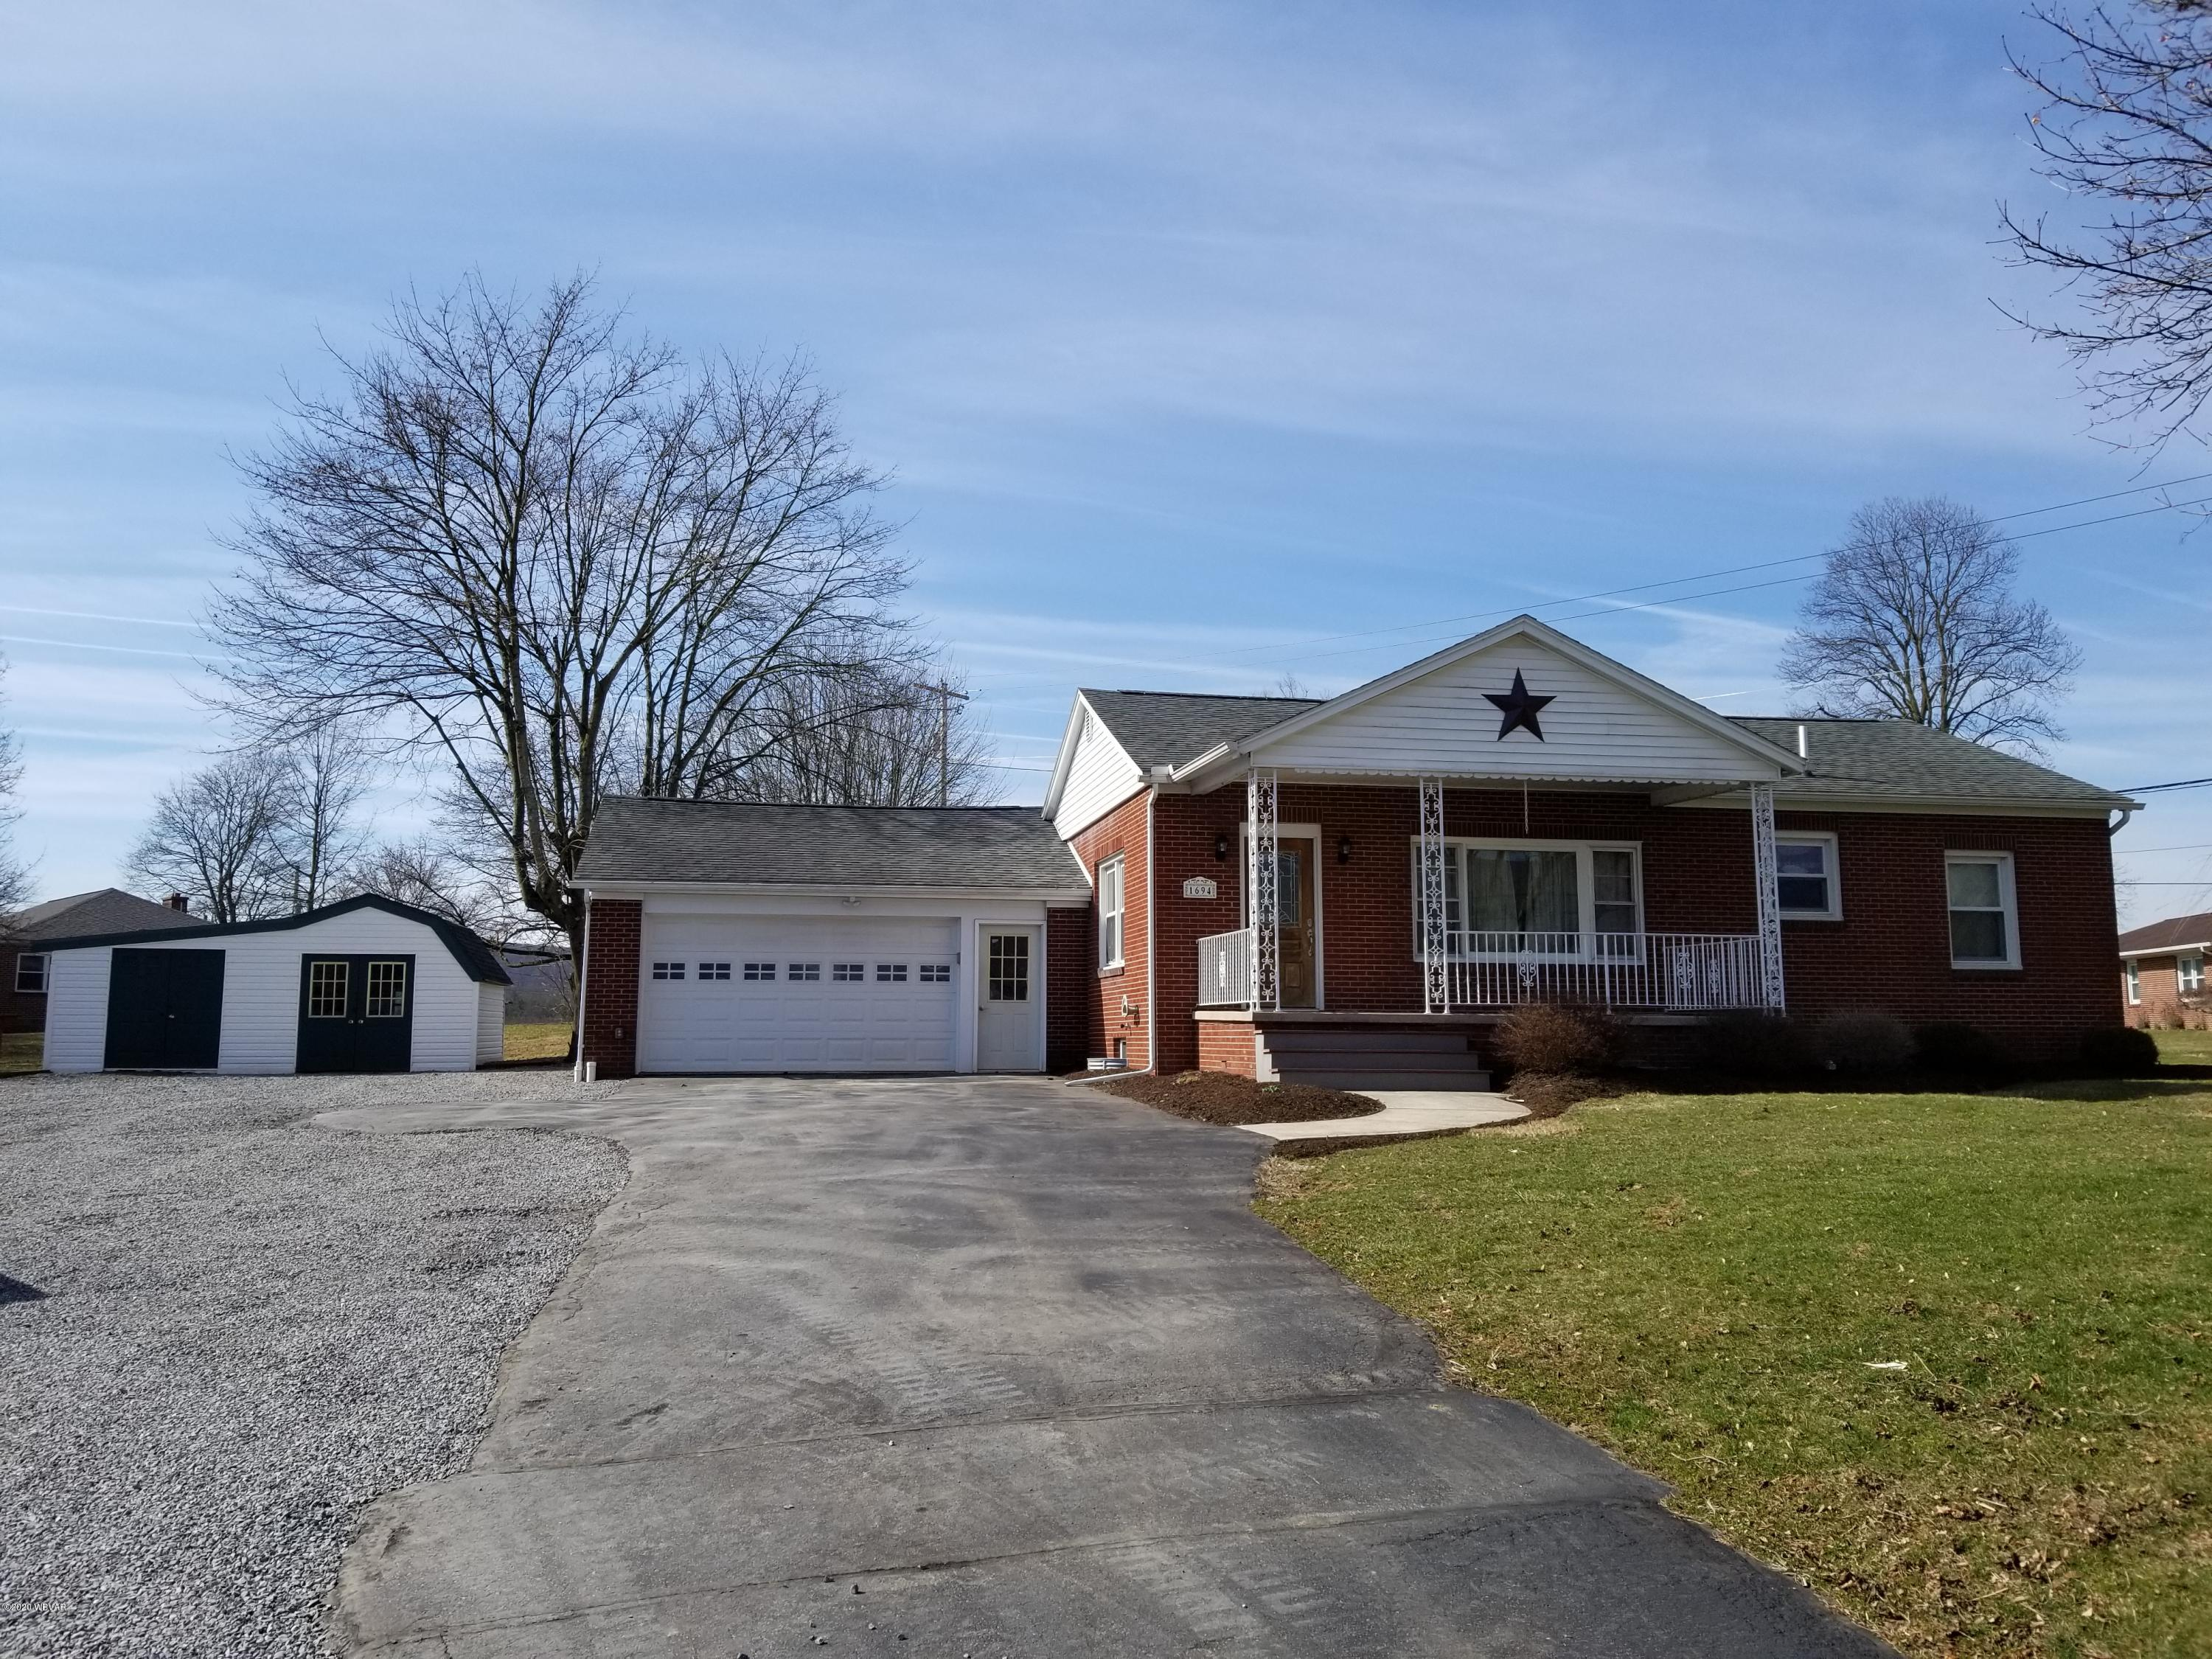 1694 RT 54 HIGHWAY,Montgomery,PA 17752,3 Bedrooms Bedrooms,1 BathroomBathrooms,Residential,RT 54,WB-89842